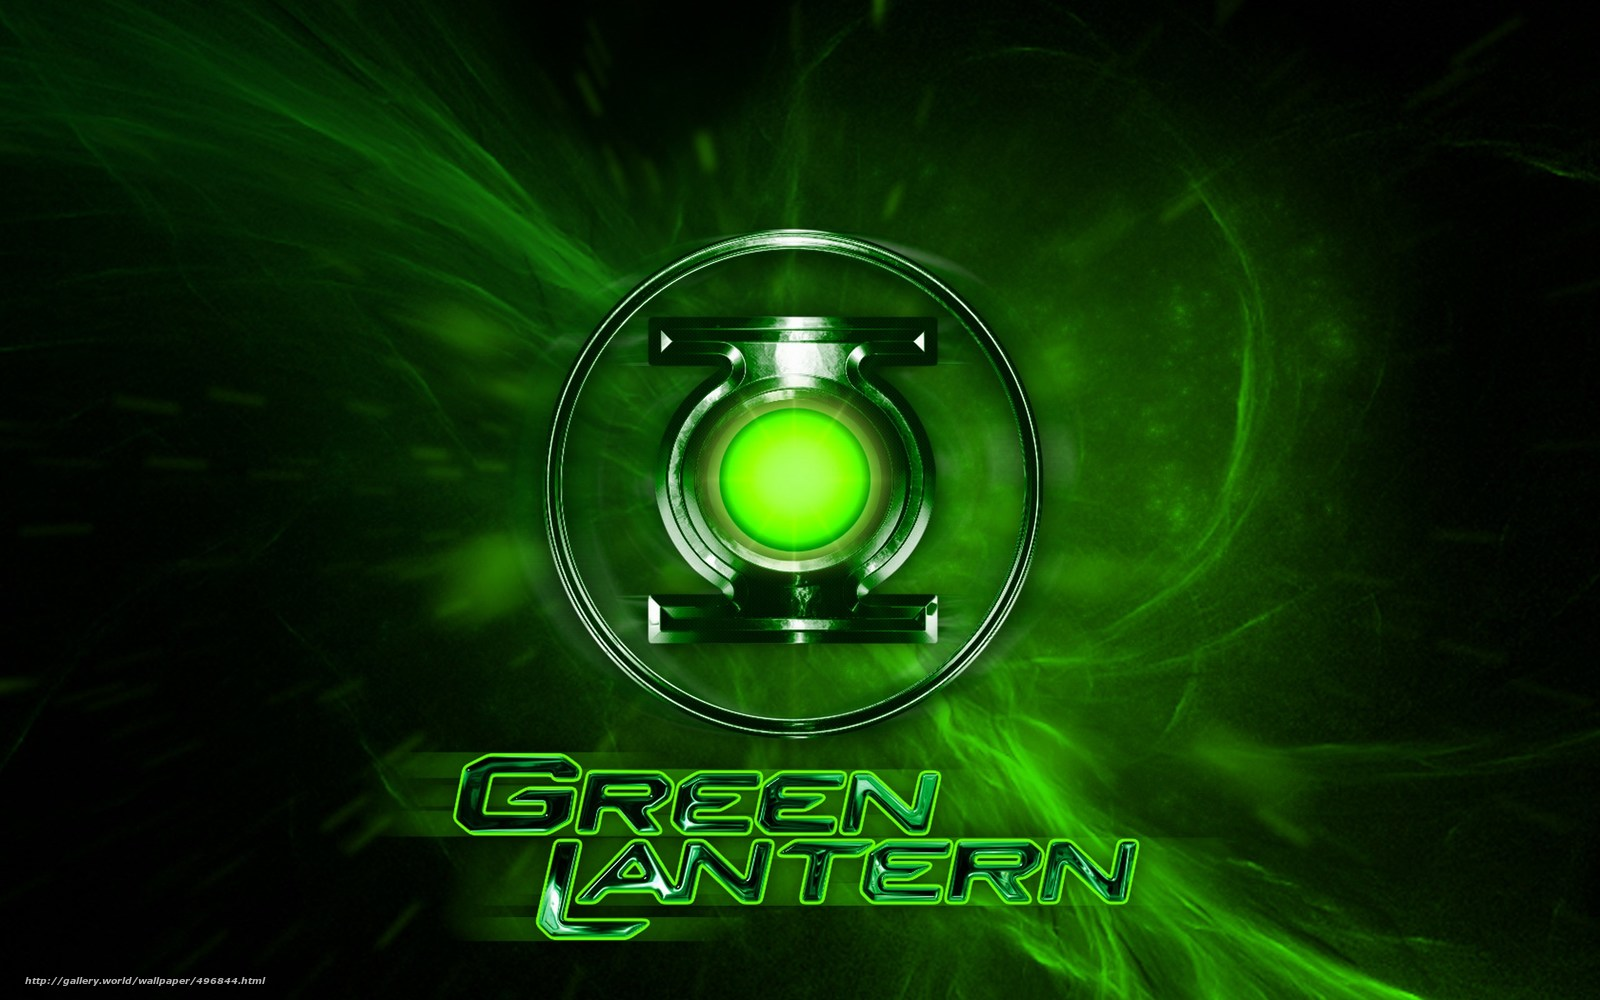 Green Lantern Logo Wallpaper Lantern logo wallpapers 1600x1000